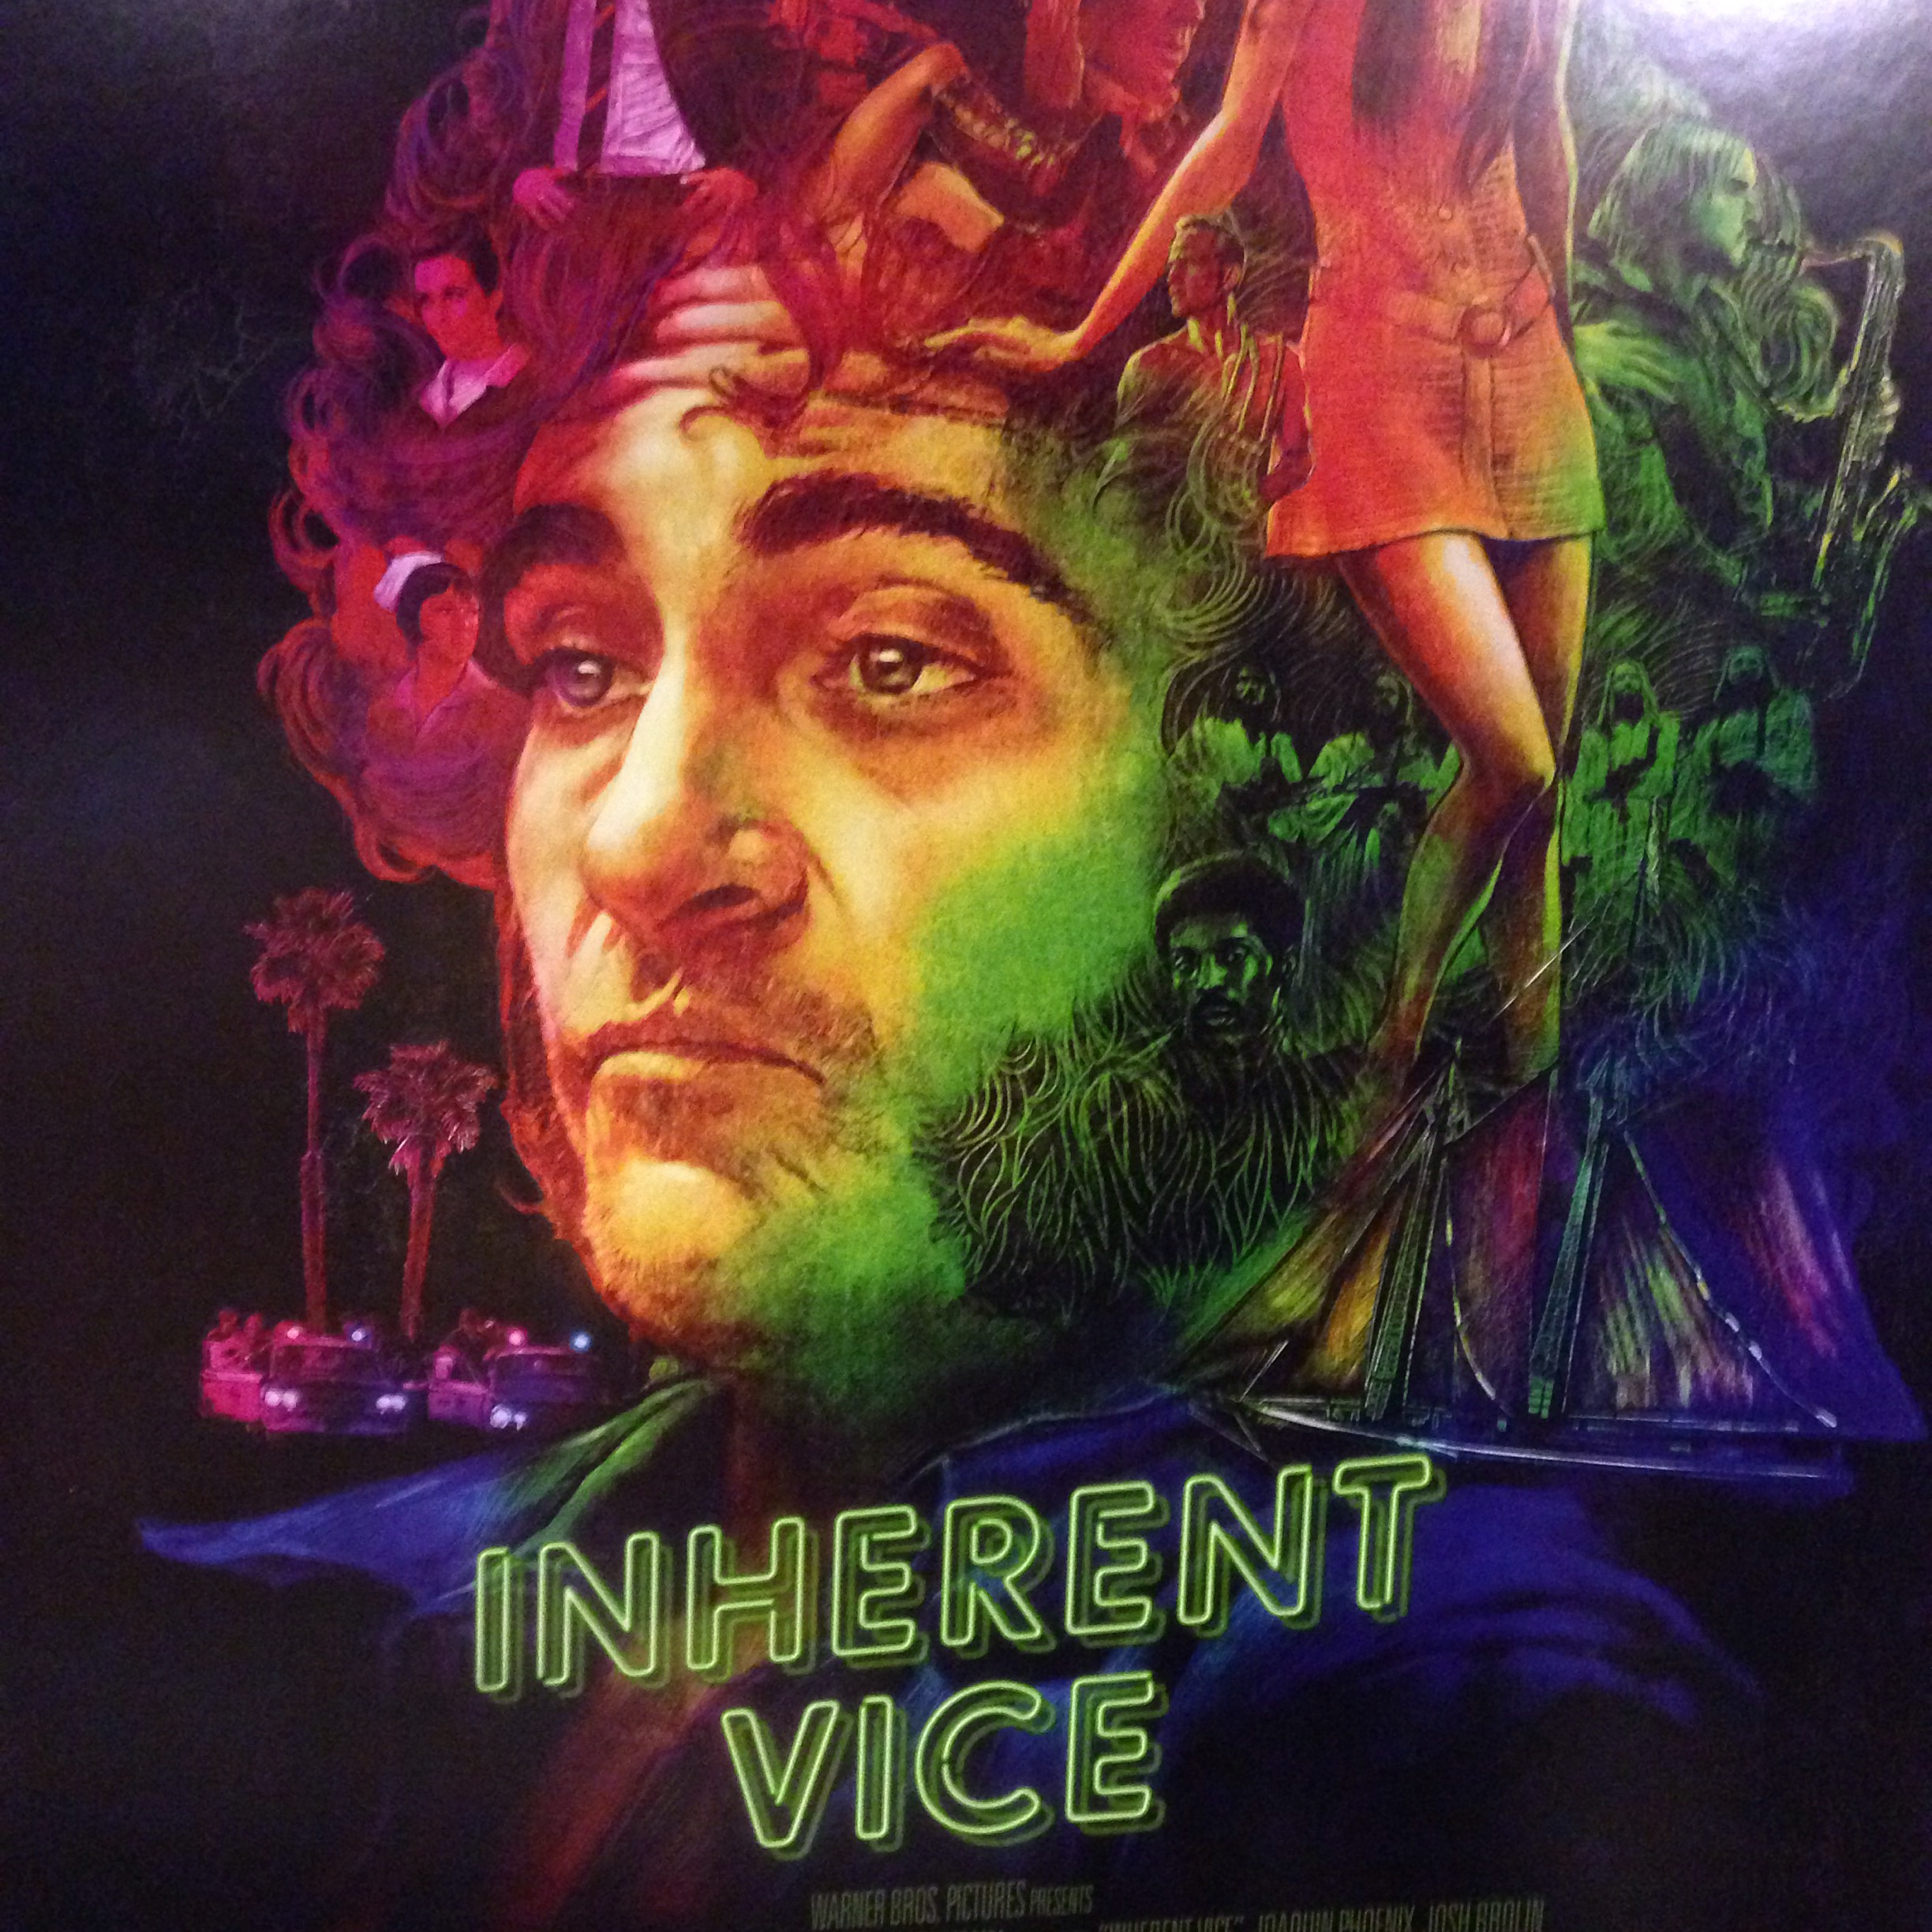 Inherent Vice Starring Joaquin Phoenix